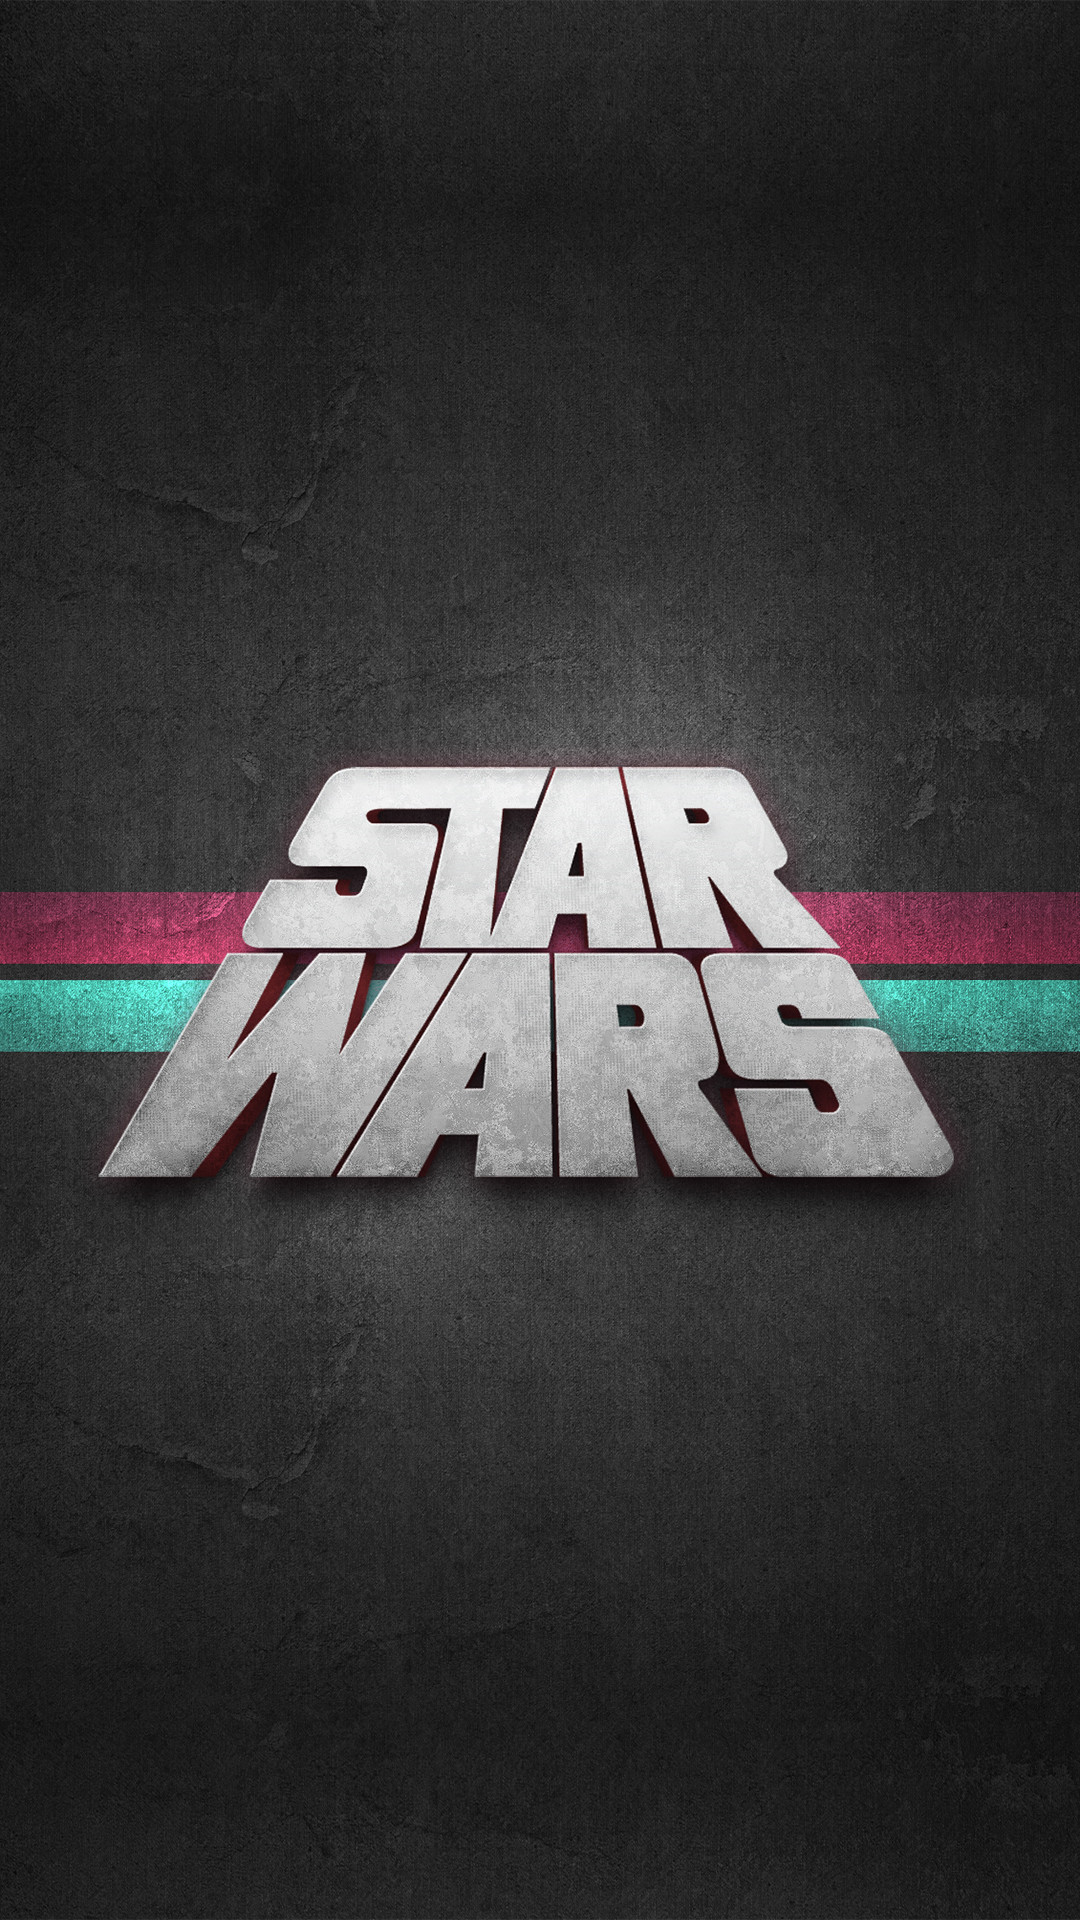 1080x1920 Star Wars Poster Dark Grunge Android Wallpaper